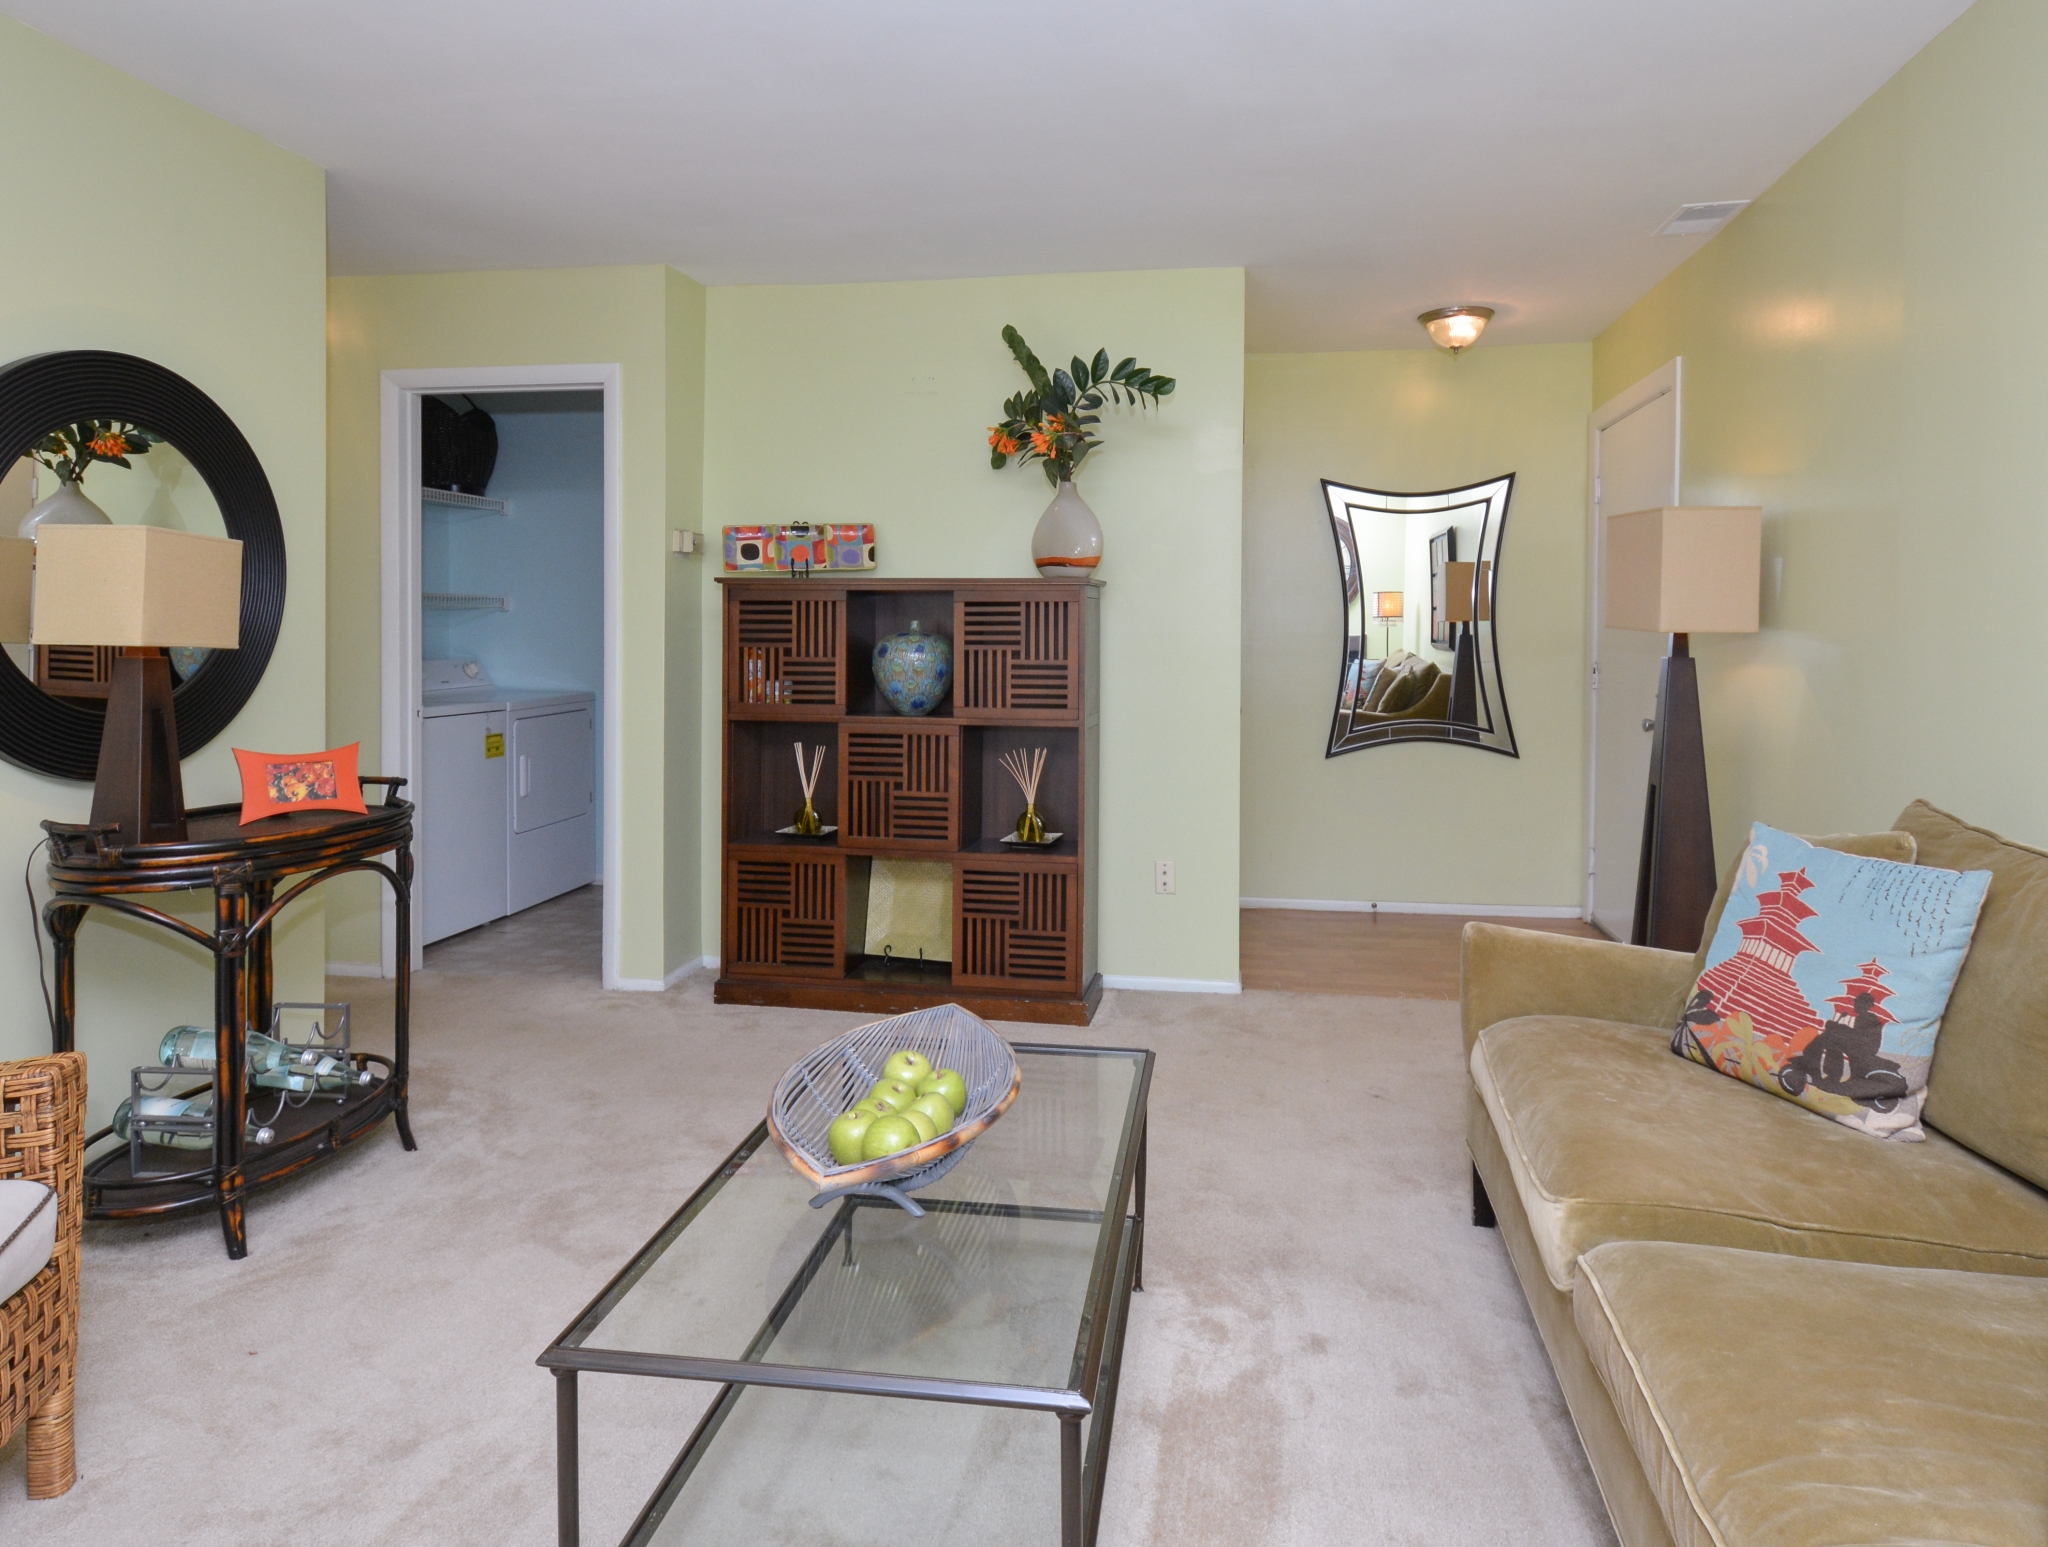 Elegant Living Room | Apartments for rent in Laurel, MD | Spring House Apartments